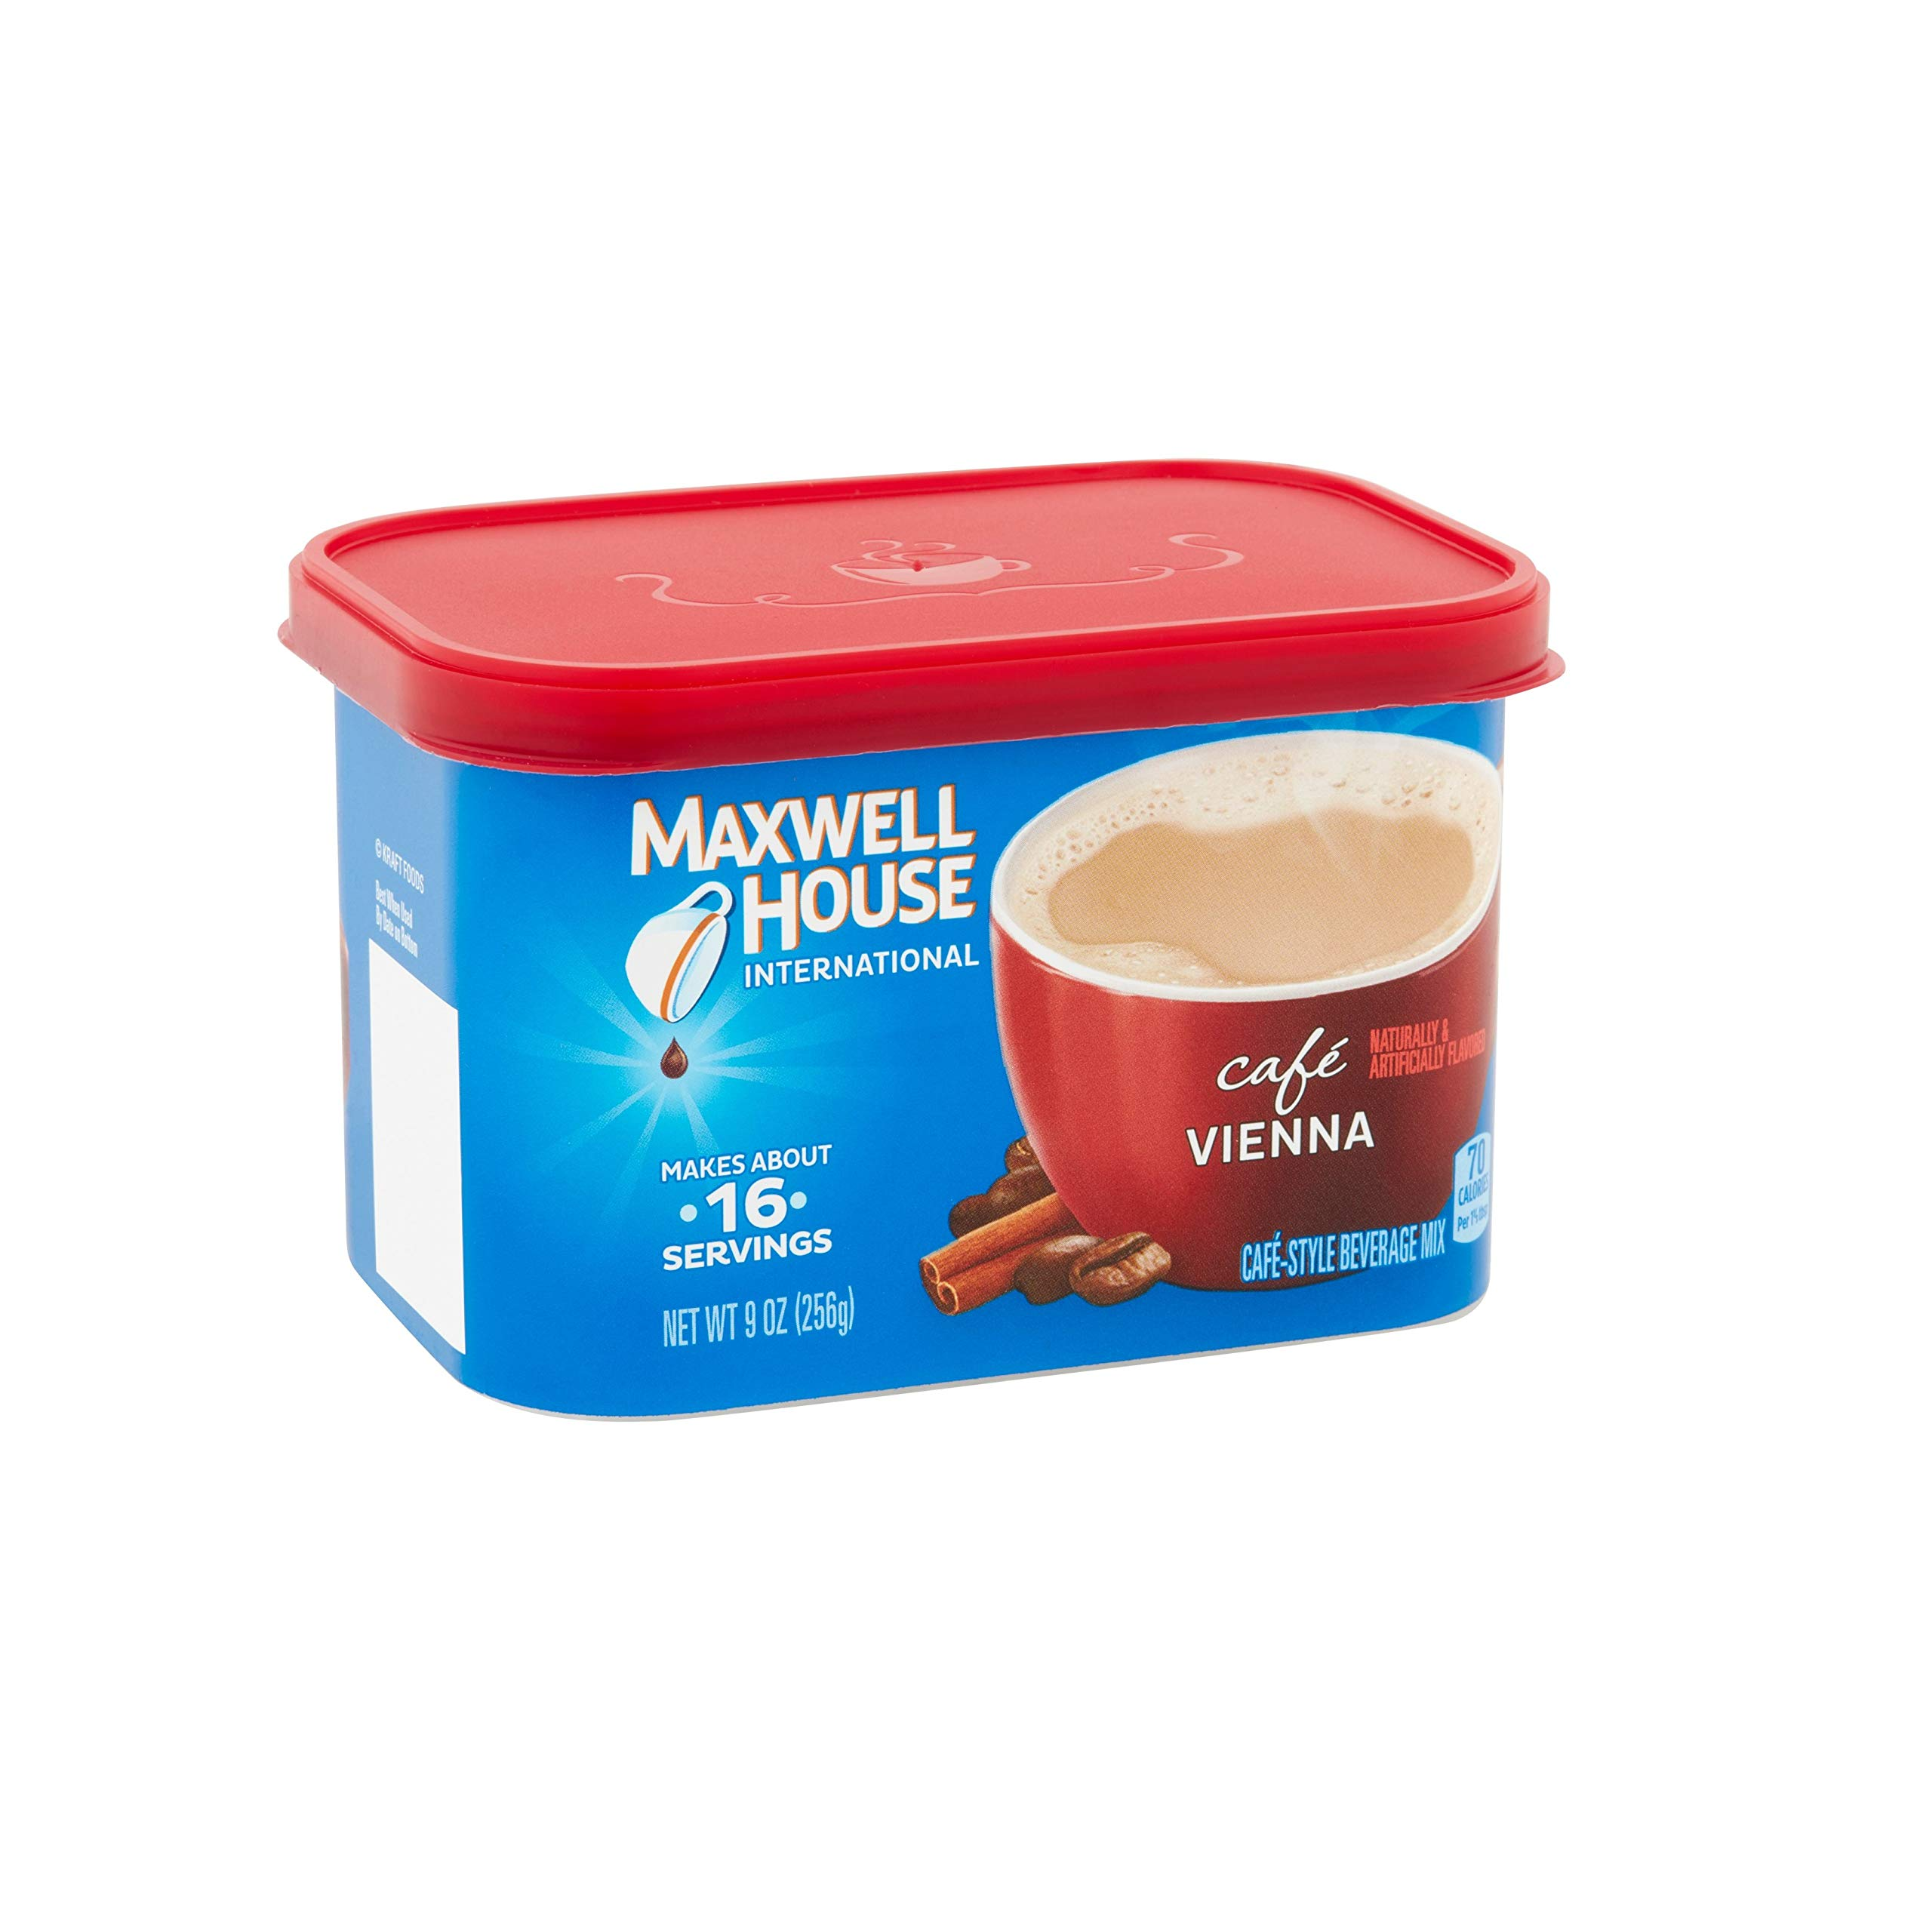 Maxwell House International Coffee Café Vienna, 9-Ounce Cans (Pack of 6)